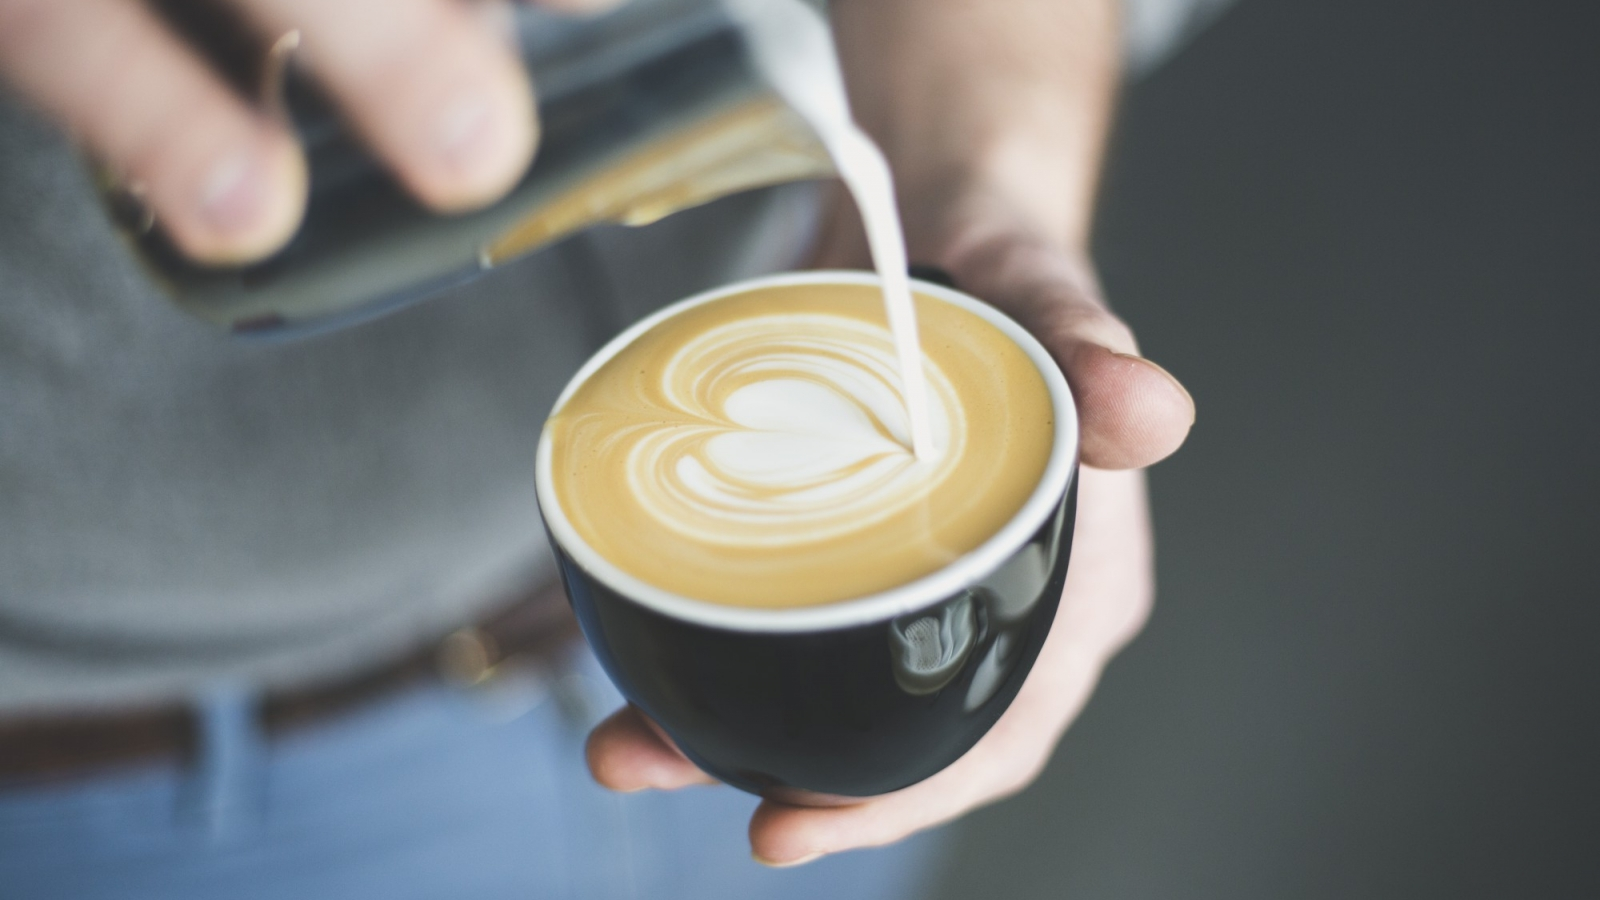 Does the milk matter in coffee